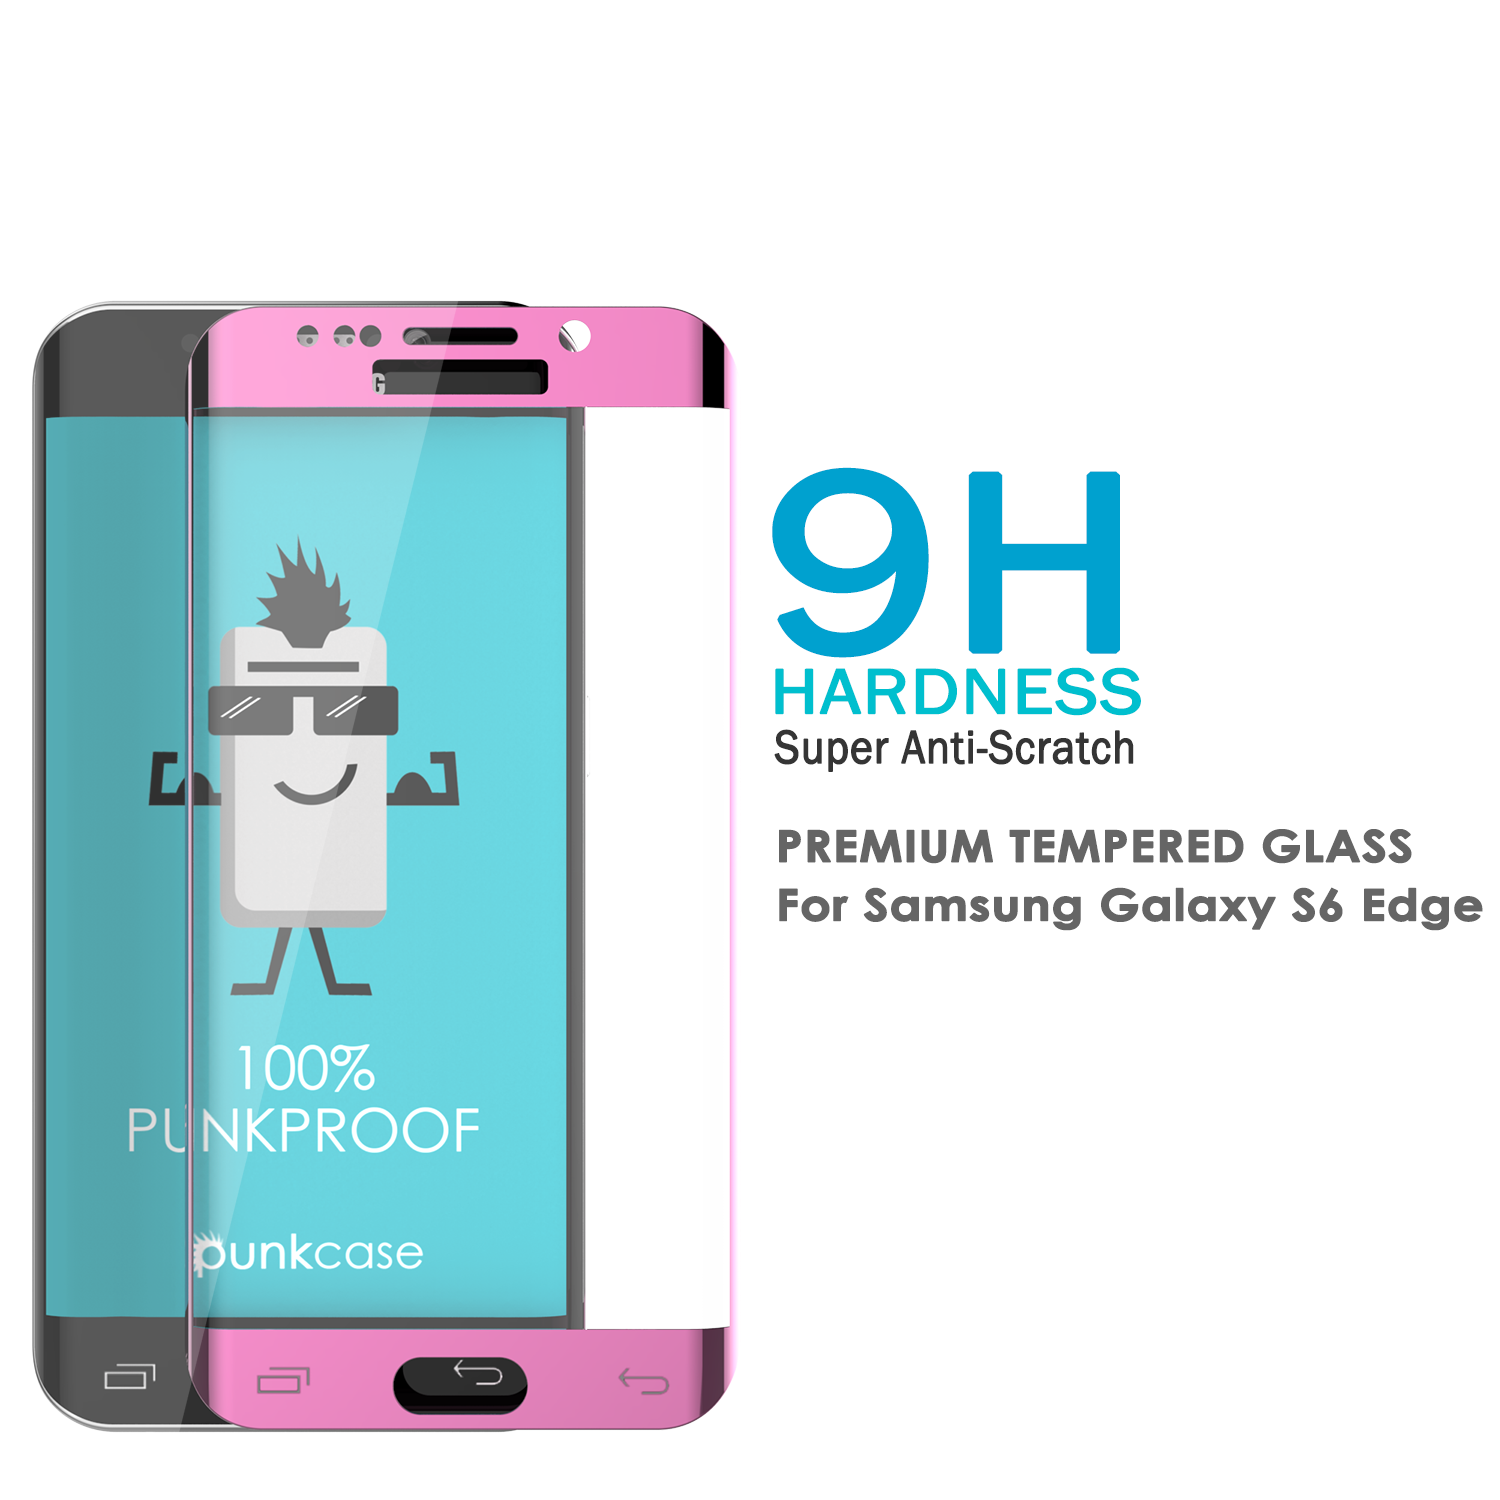 Galaxy S6 Edge Plus Pink Punkcase Glass SHIELD Tempered Glass Screen Protector 0.33mm Thick 9H Glass